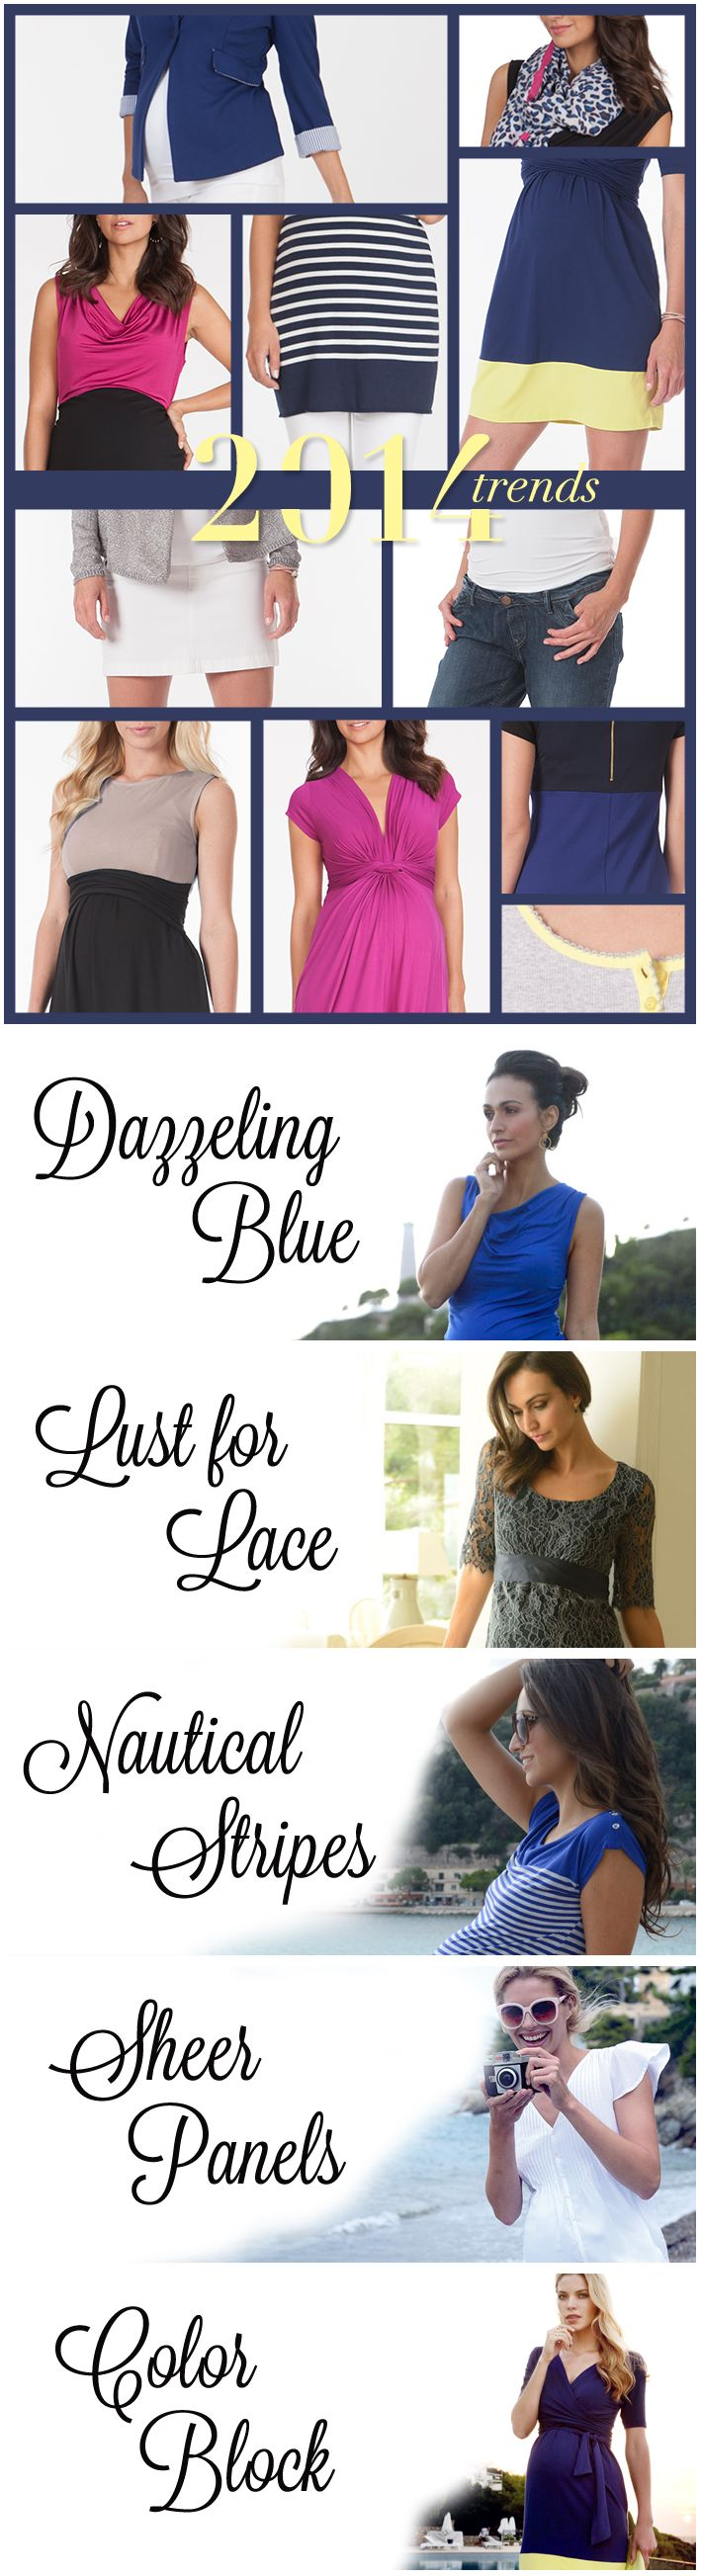 Pregnancy Style Quotient Tips + Maternity fashion trends 2014   Mommylicious Maternity